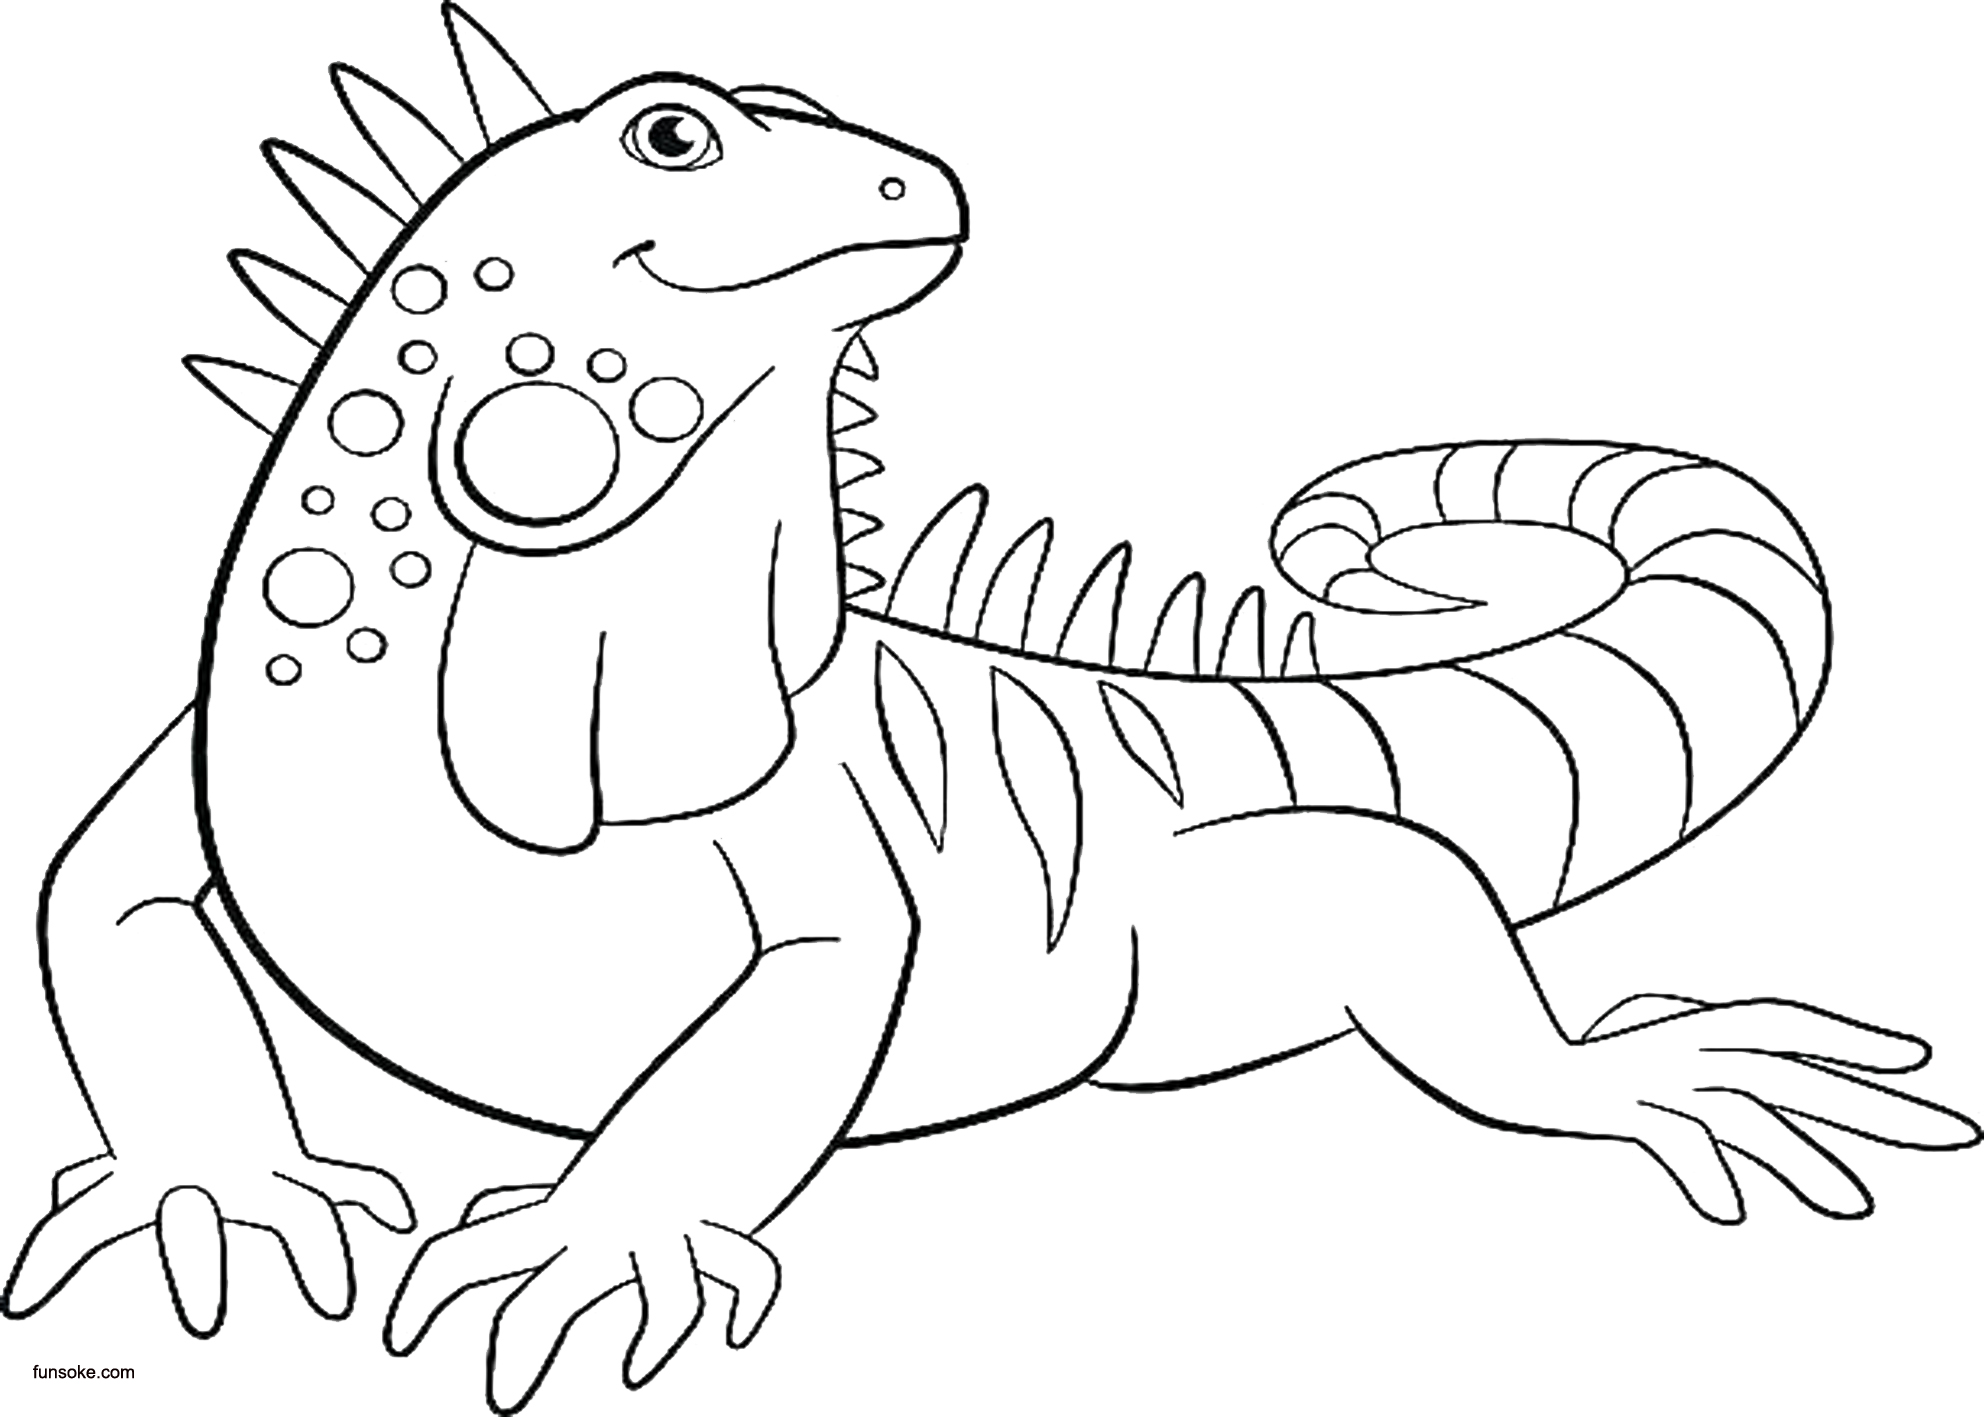 coloring page iguana 1 grayscale iguana coloring pages getcoloringpagesorg page iguana coloring